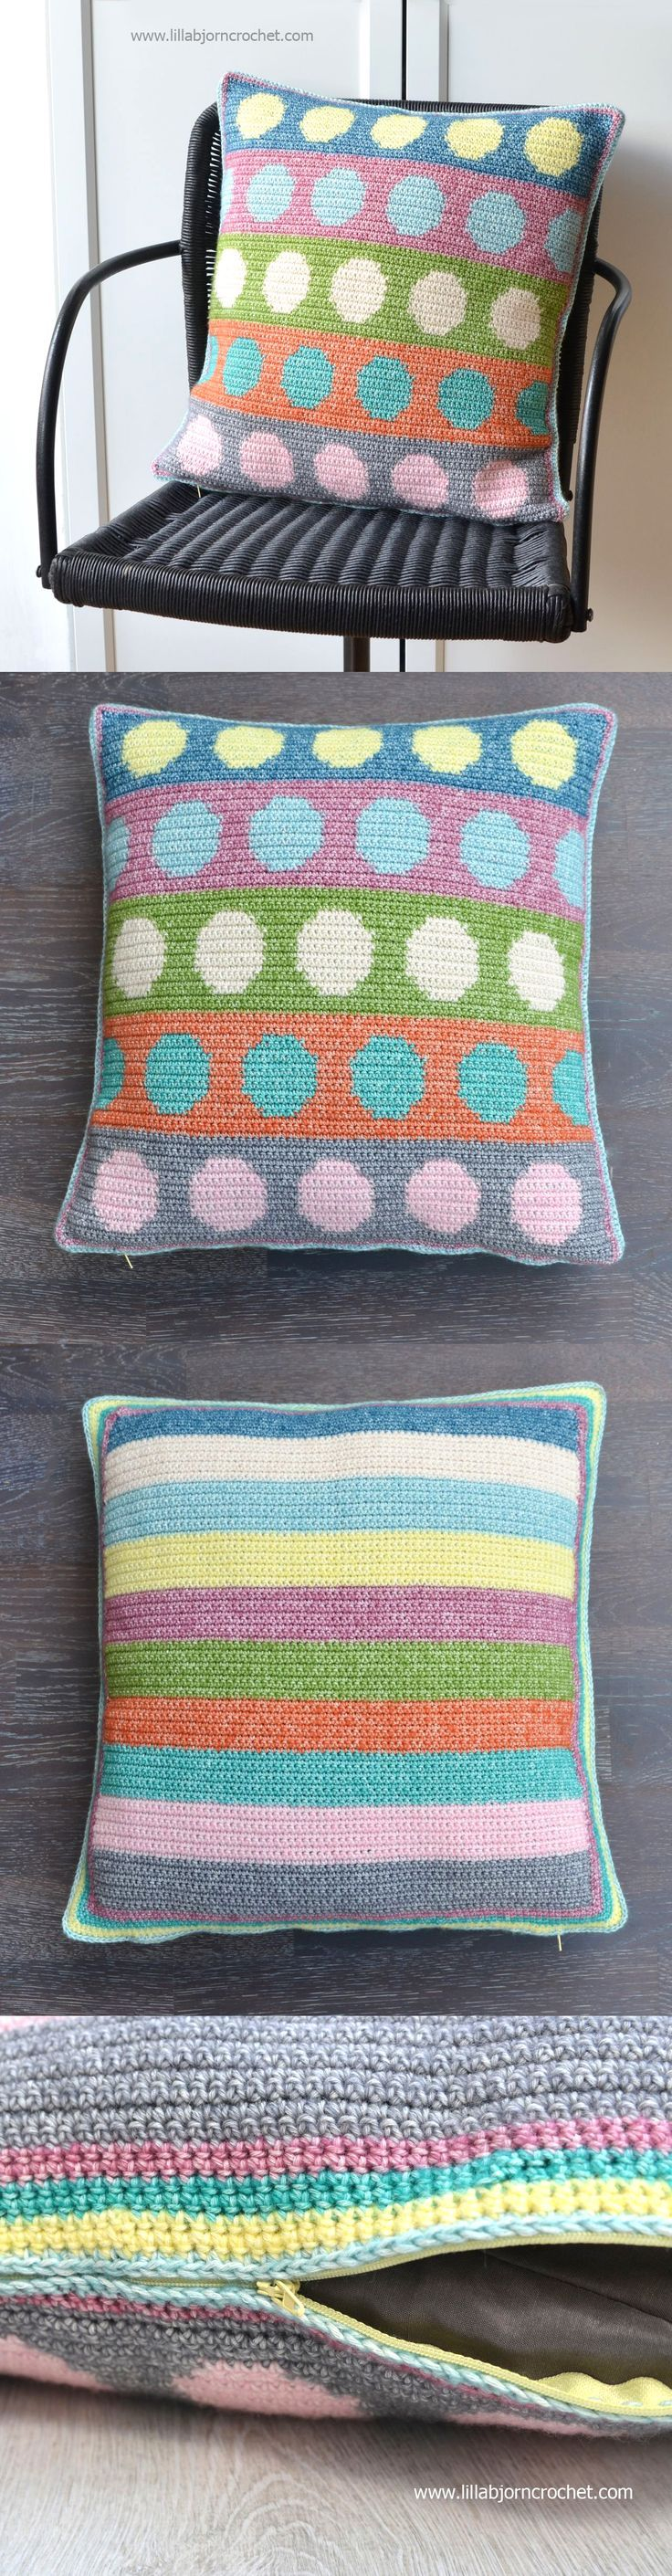 Tapestry Circles Pillow: free crochet pattern | Häkeln, Stricken und ...